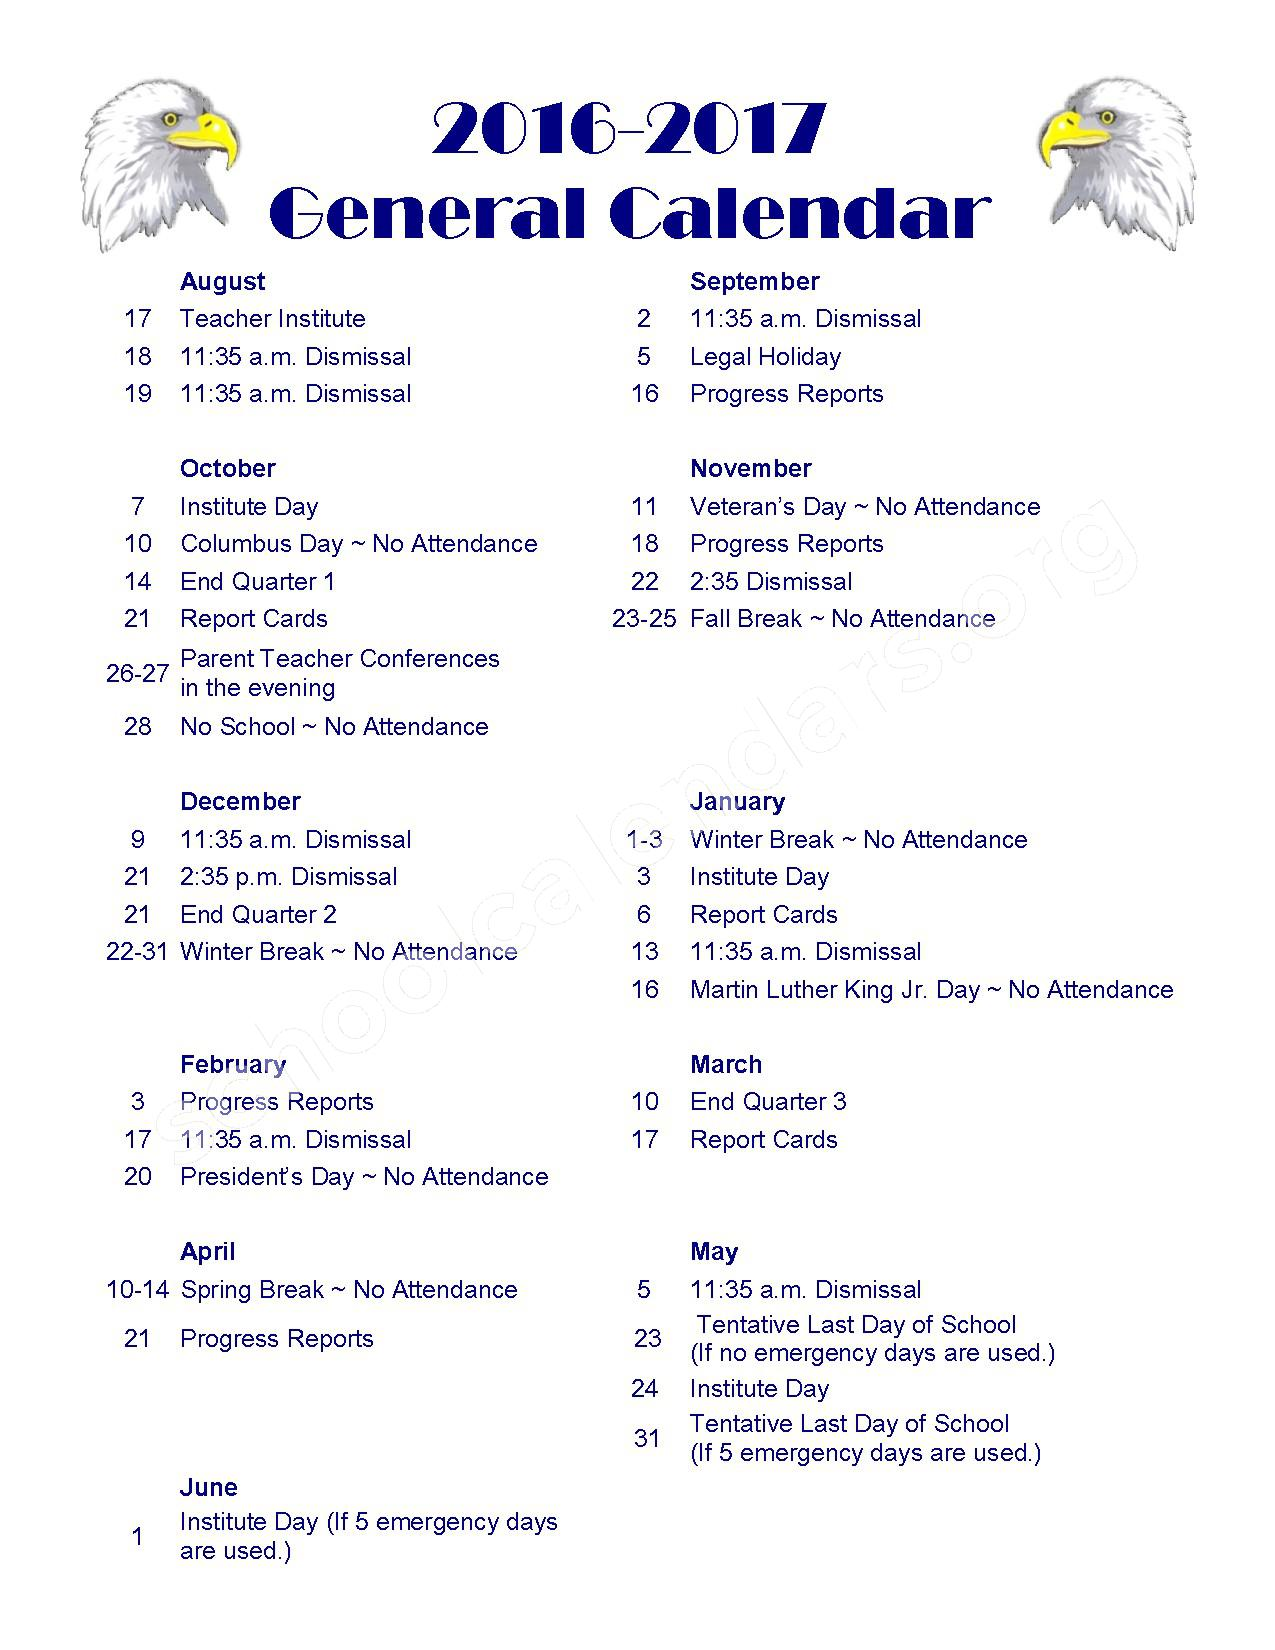 2016 - 2017 school calendar – Paris Cooperative High School 4 – page 1